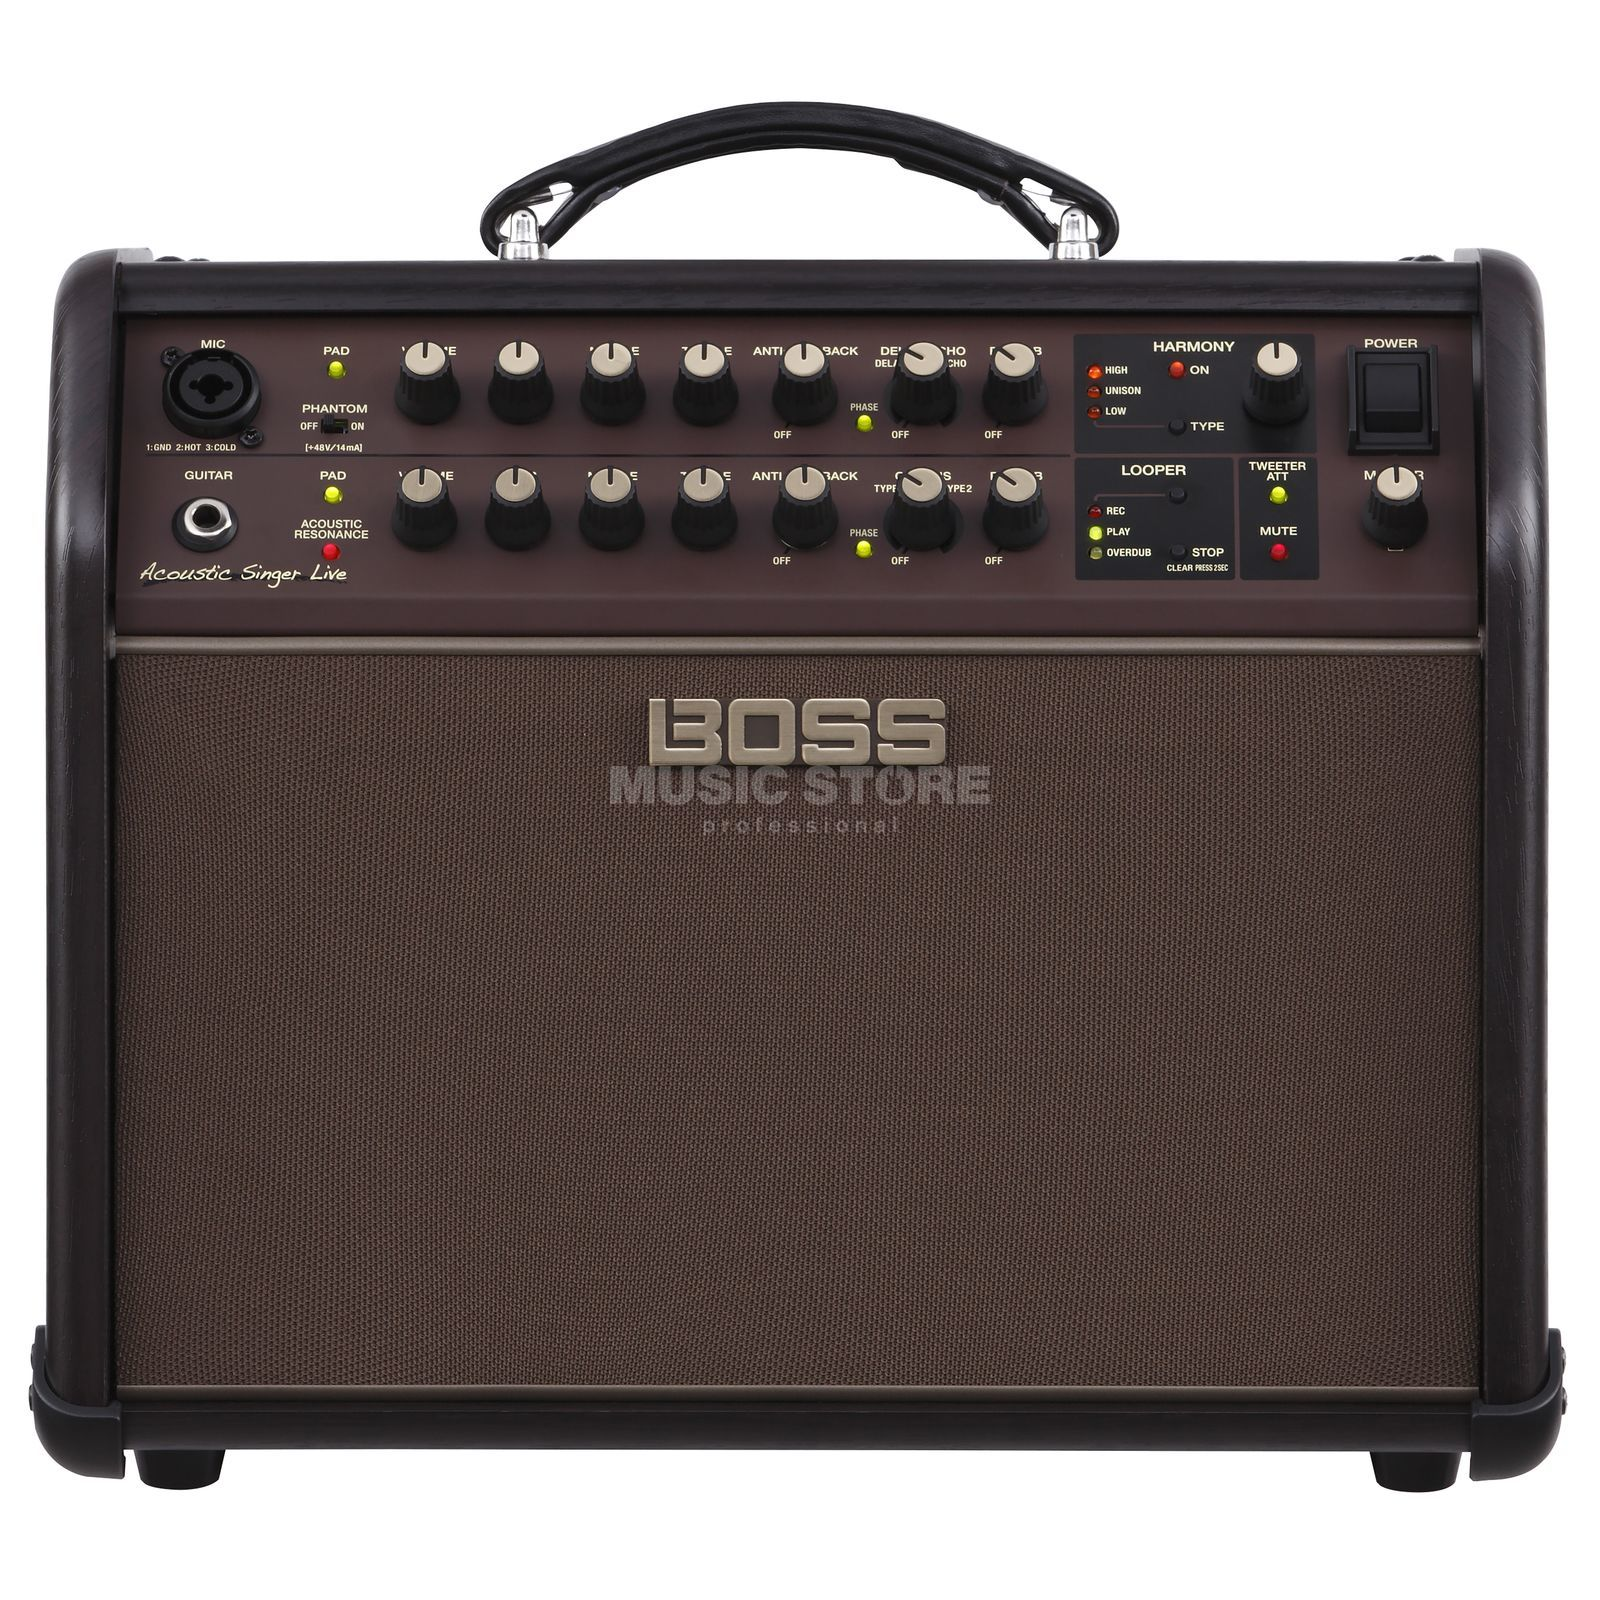 Boss Acoustic Singer Live Product Image